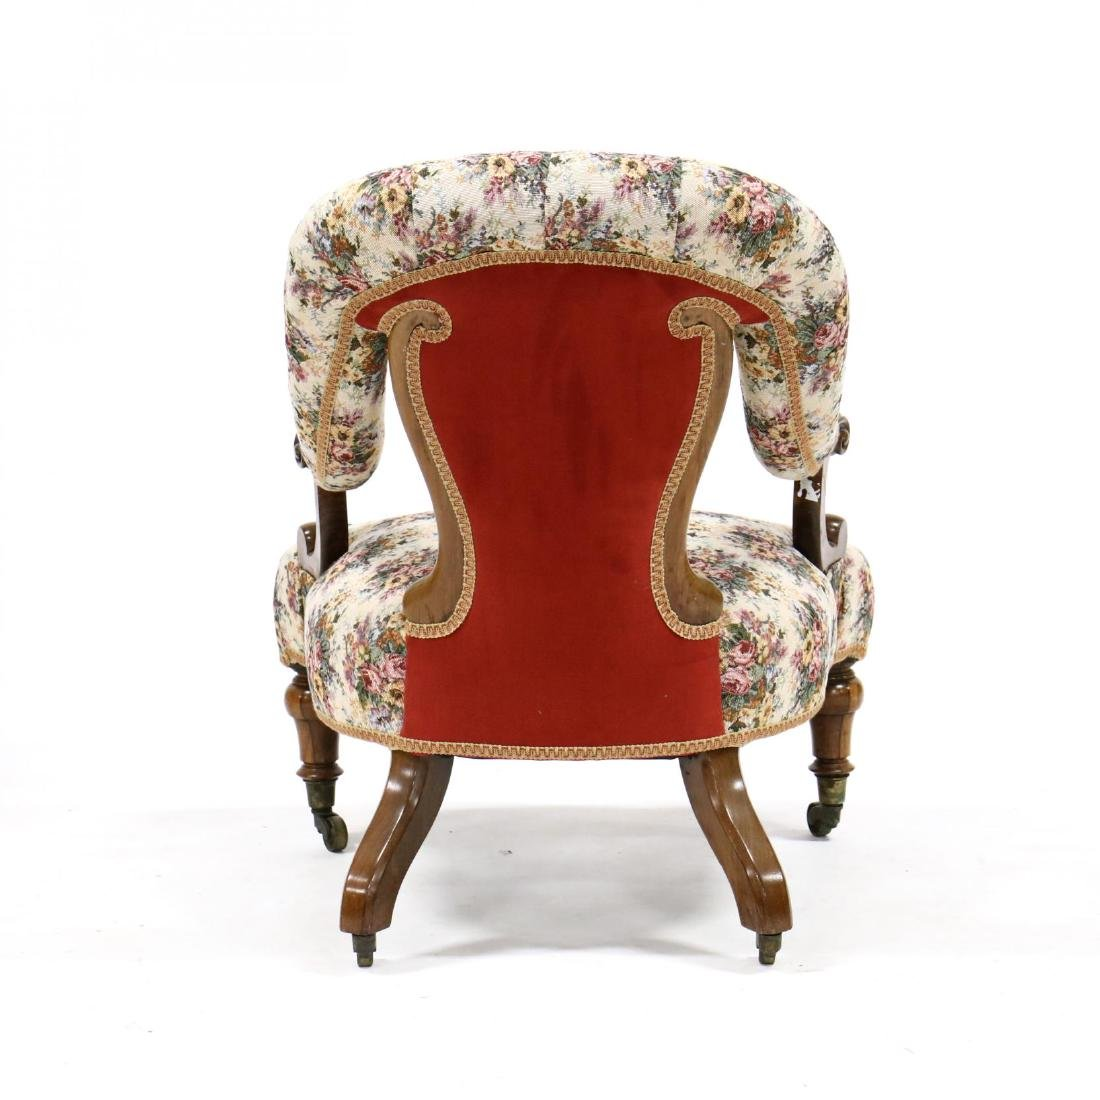 Victorian Rosewood Parlour Chair - 3